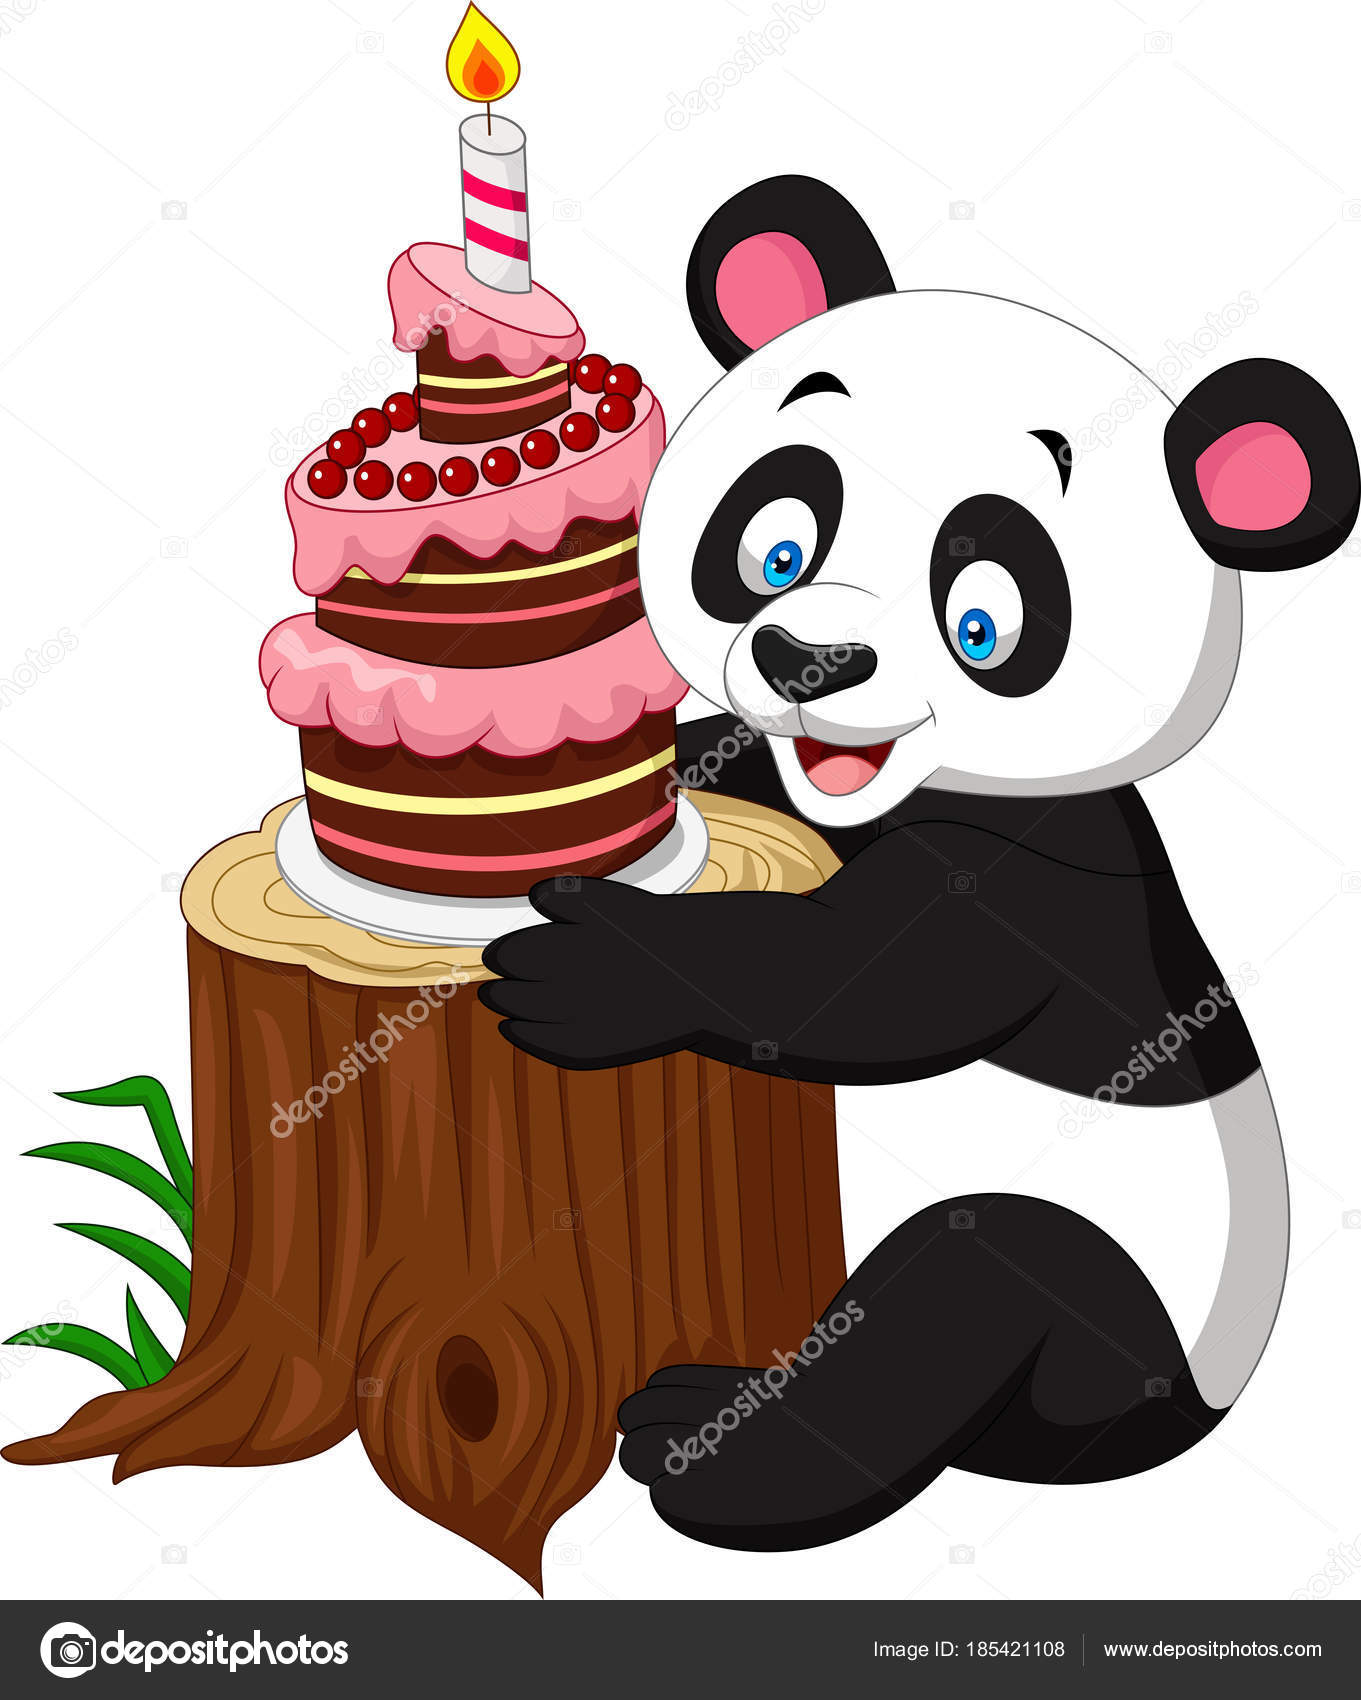 Remarkable Iictures Funny Birthday Cakes Cartoon Funny Panda Birthday Funny Birthday Cards Online Hendilapandamsfinfo